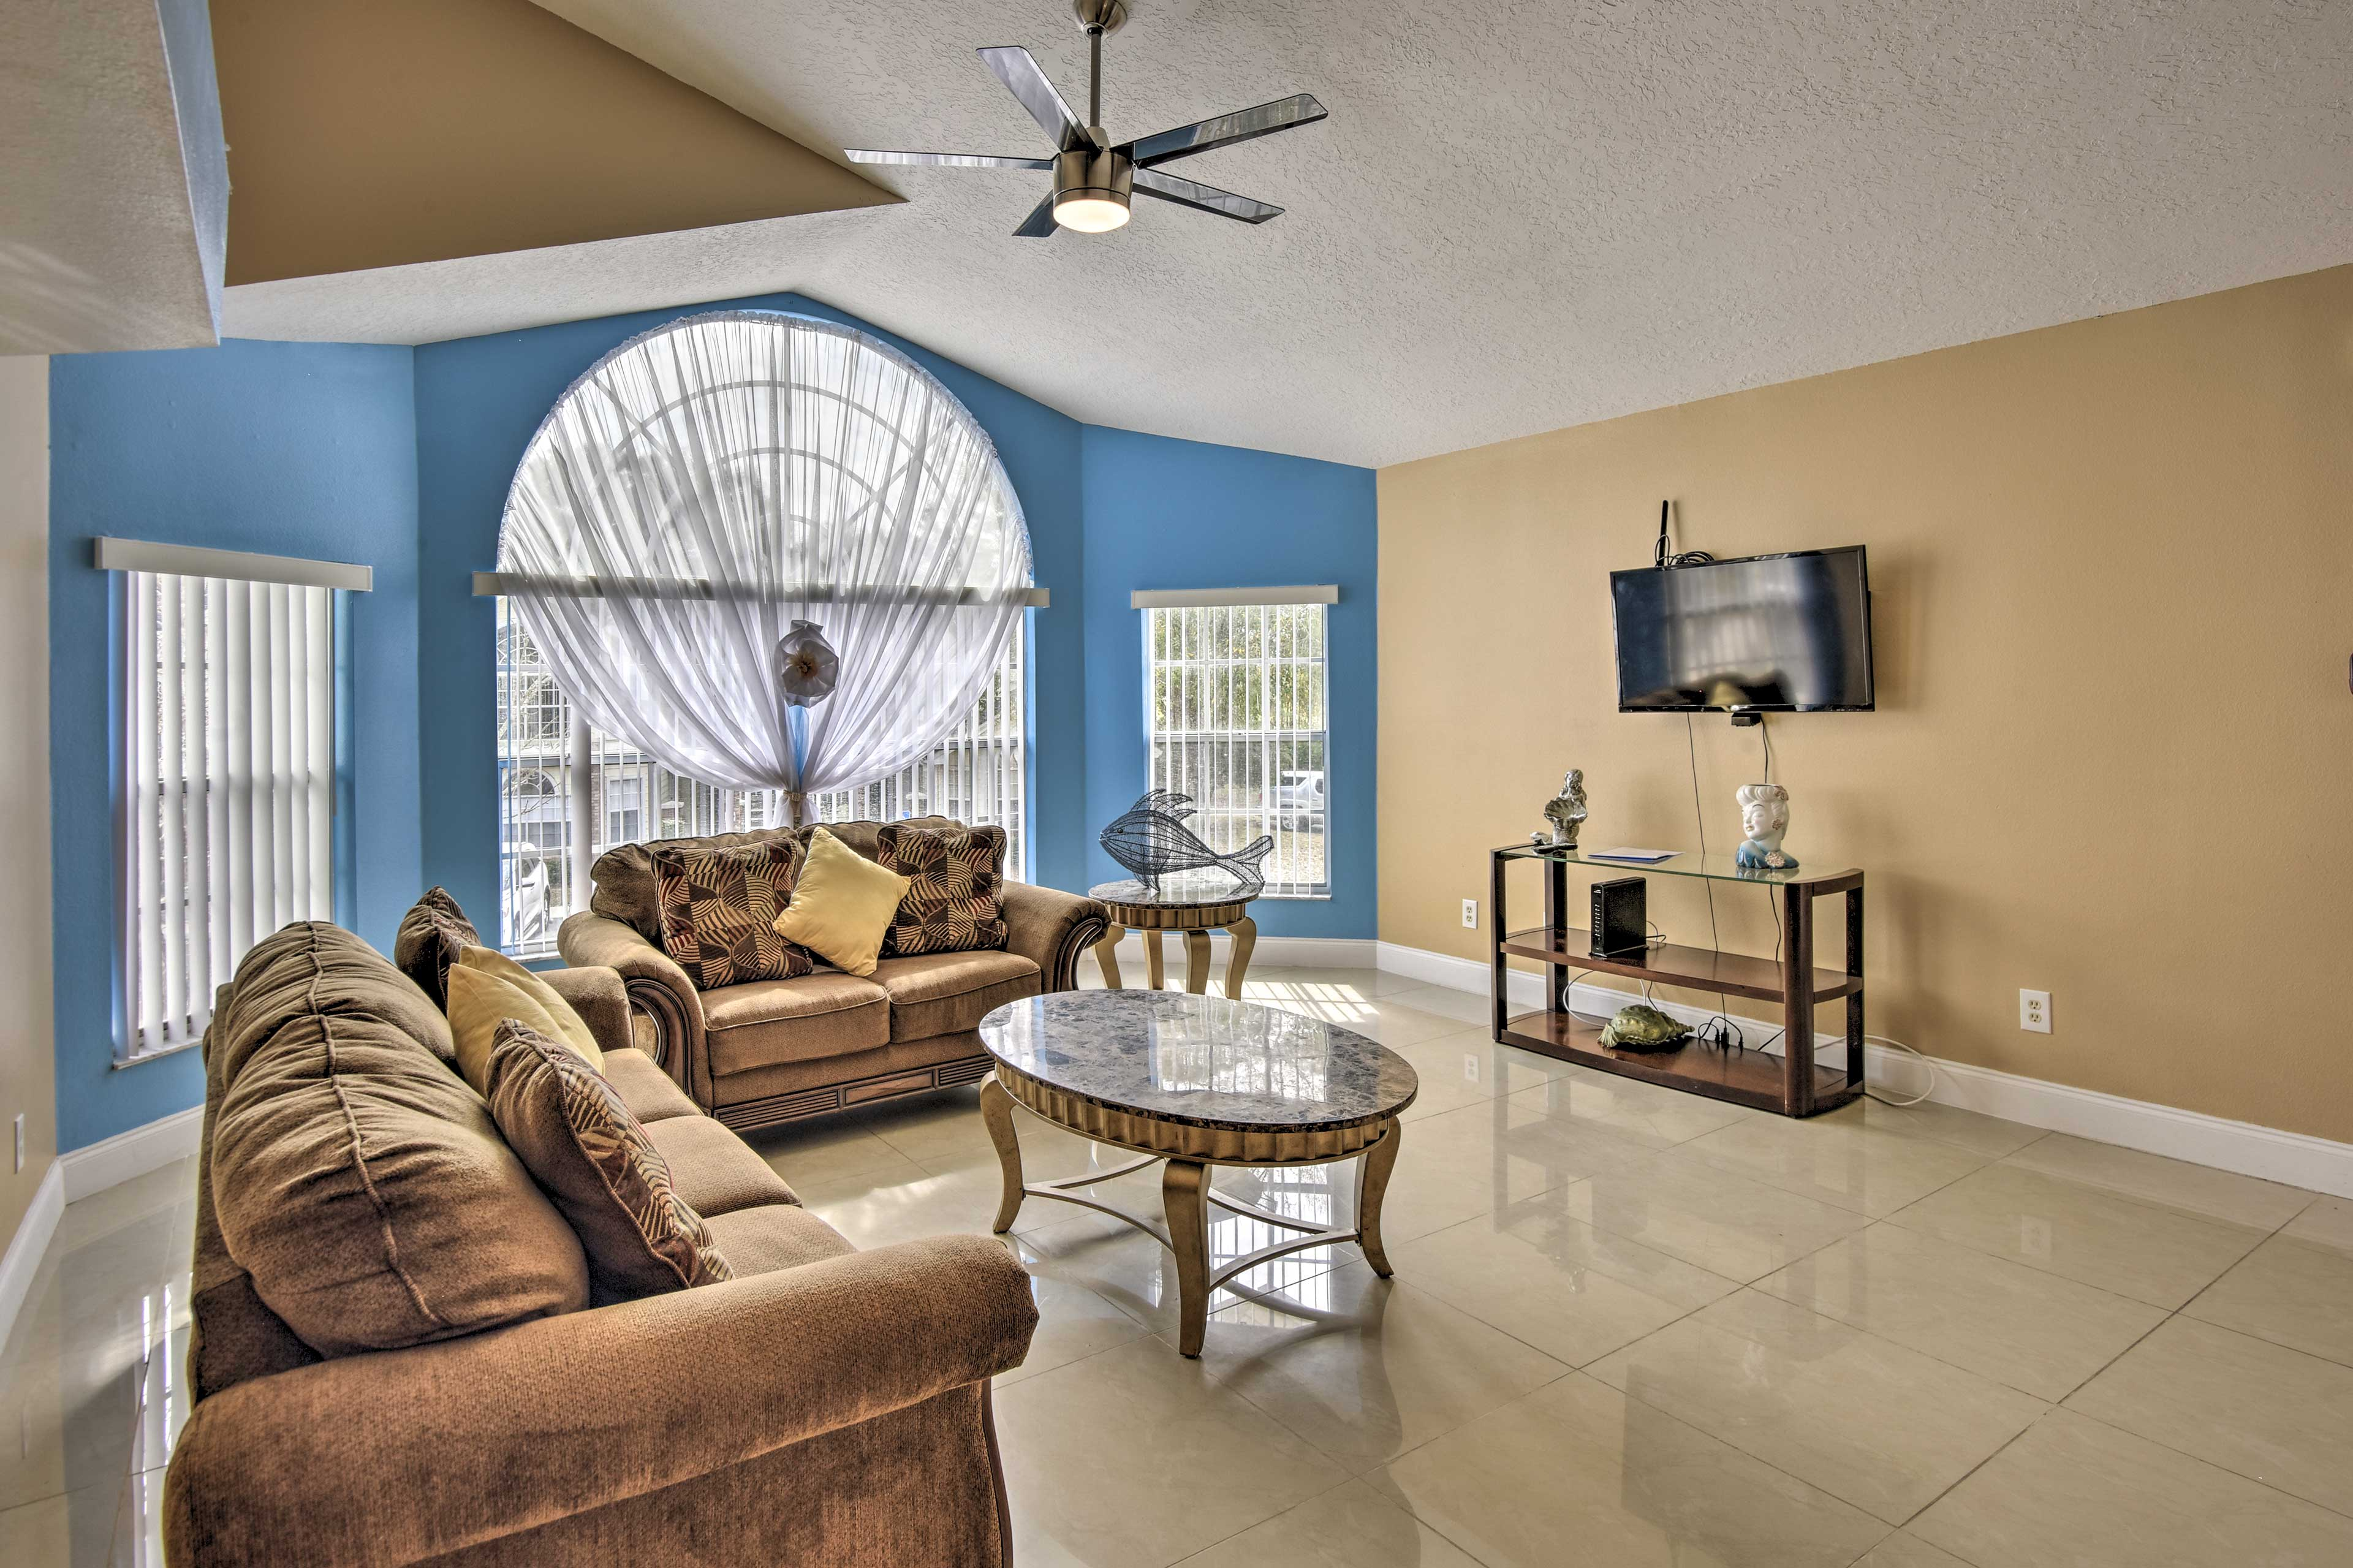 The property offers 1,220 square feet of living space!